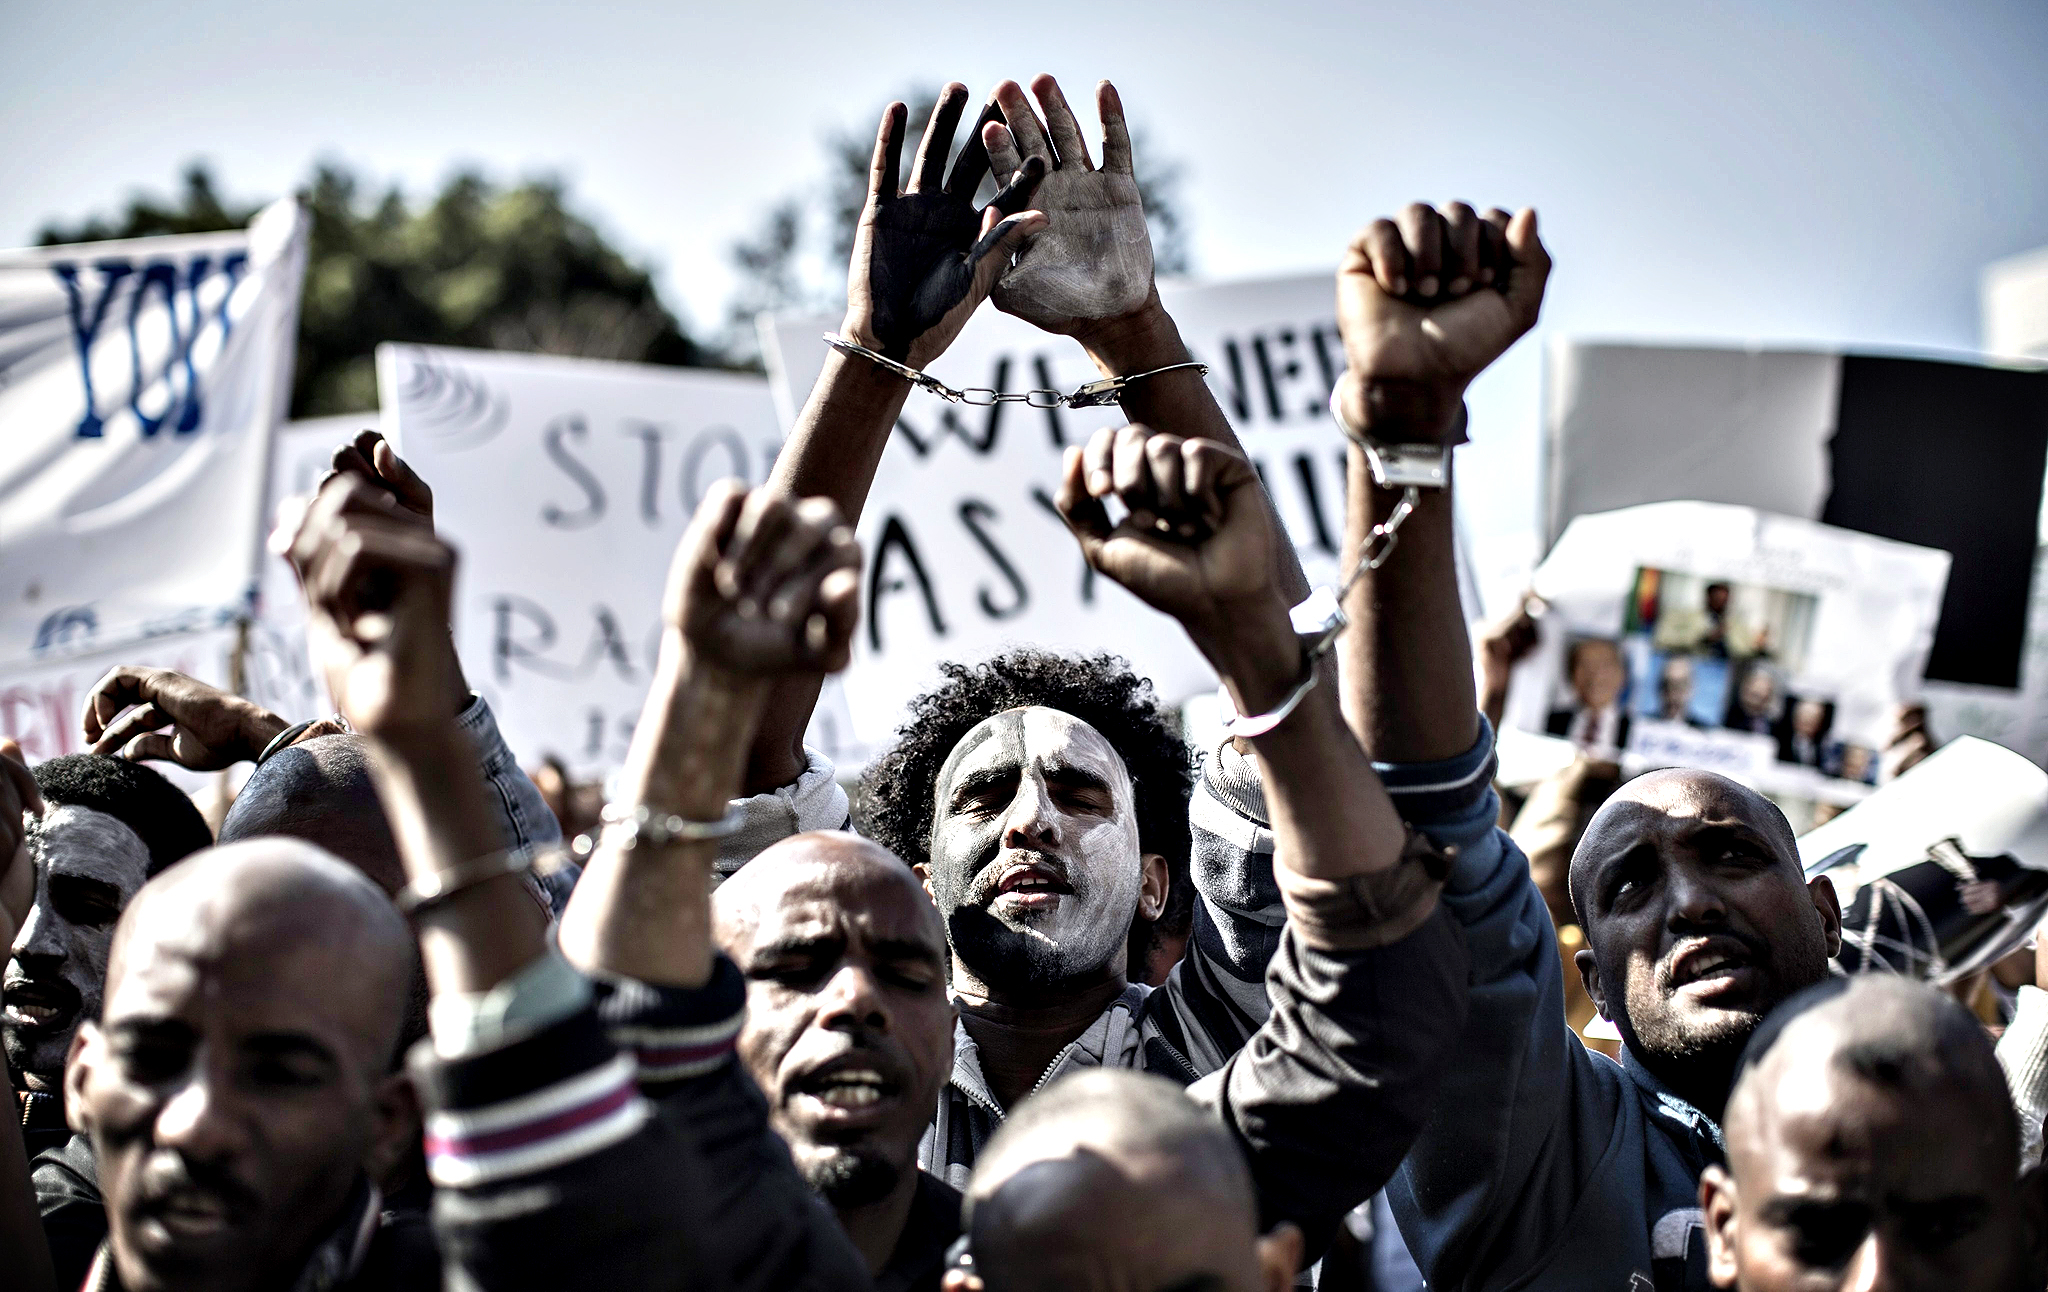 African asylum seekers gesture during a protest outside the Ministry of Interior in Tel Aviv, Israel, 11 February 2014. Over 1,000 African migrants, which mostly arrive from Eritrea and Sudan, marched from southern Tel Aviv's Levinski Park to the Ministry of Interior. The asylum seekers are protesting since weeks  against Israel's refusal to grant them refugee status and the opening of 'Holot', the new detention facility in the country's south.